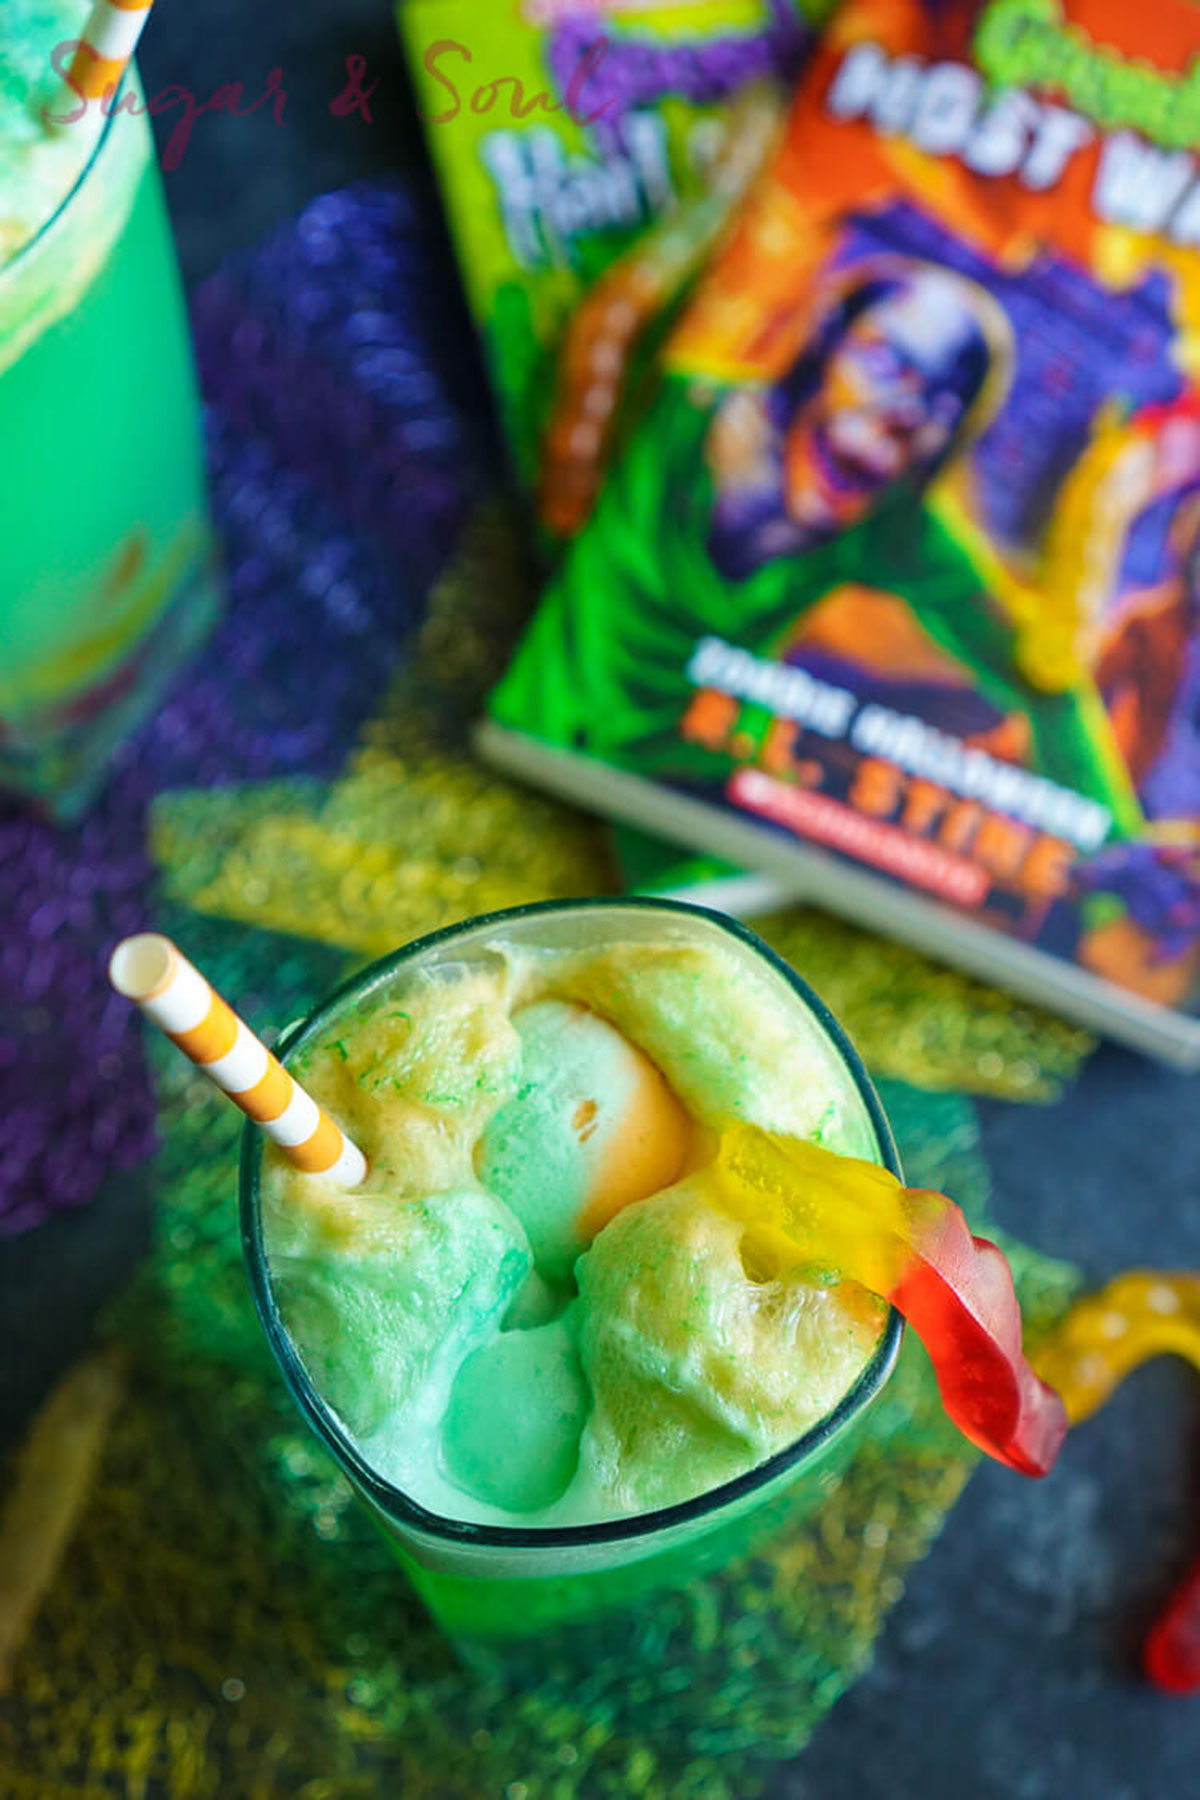 21 easy halloween punch recipes alcoholic punch ideas for halloween - Halloween Punch Alcohol